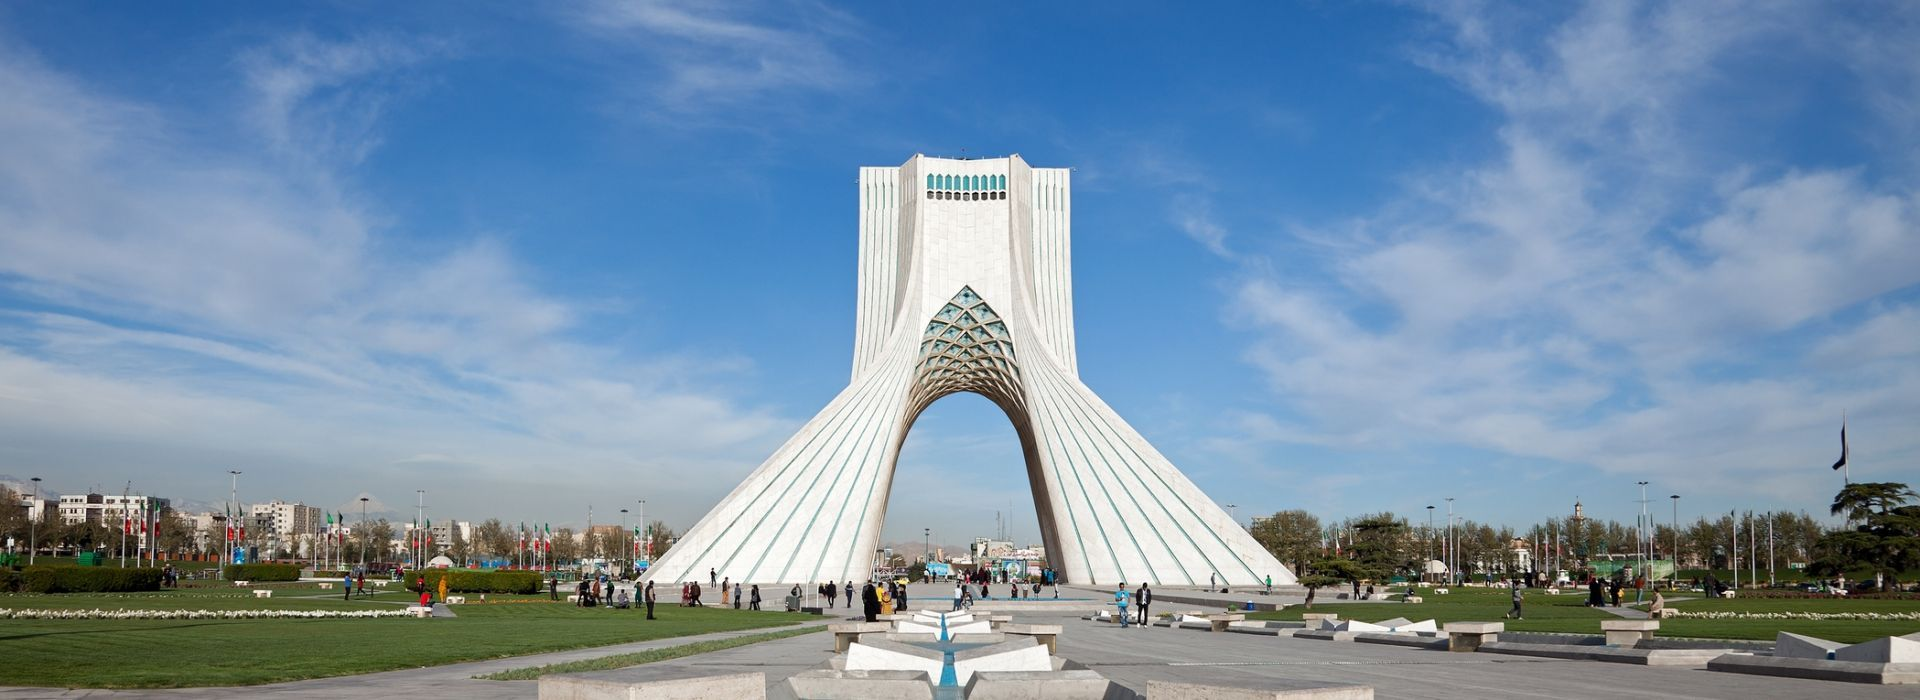 Natural landmarks sightseeing Tours in Isfahan